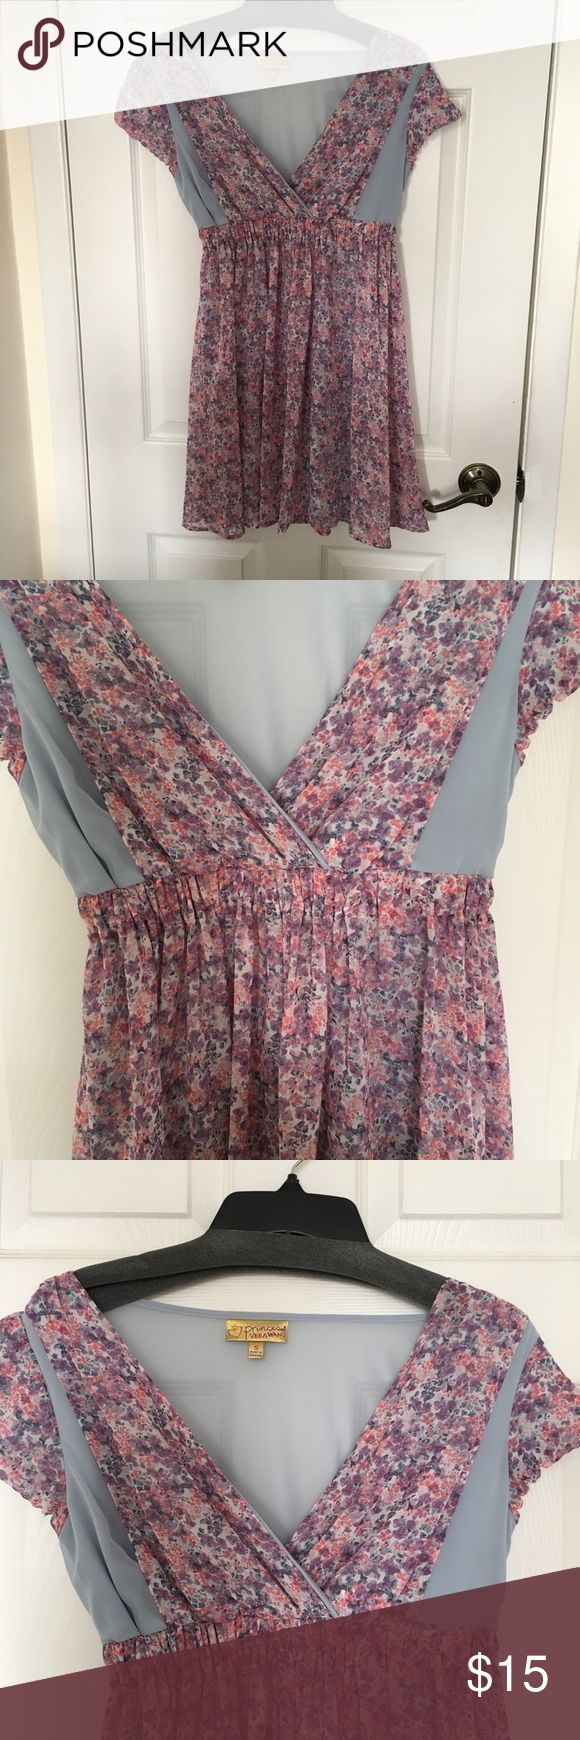 Floral V-neck Swing Dress (Princess 👑 Vera Wang) Princess Vera Wang -juniors sizing -size small -Perfect for Valentine's Day or Spring -Never worn before Princess Vera Wang Dresses